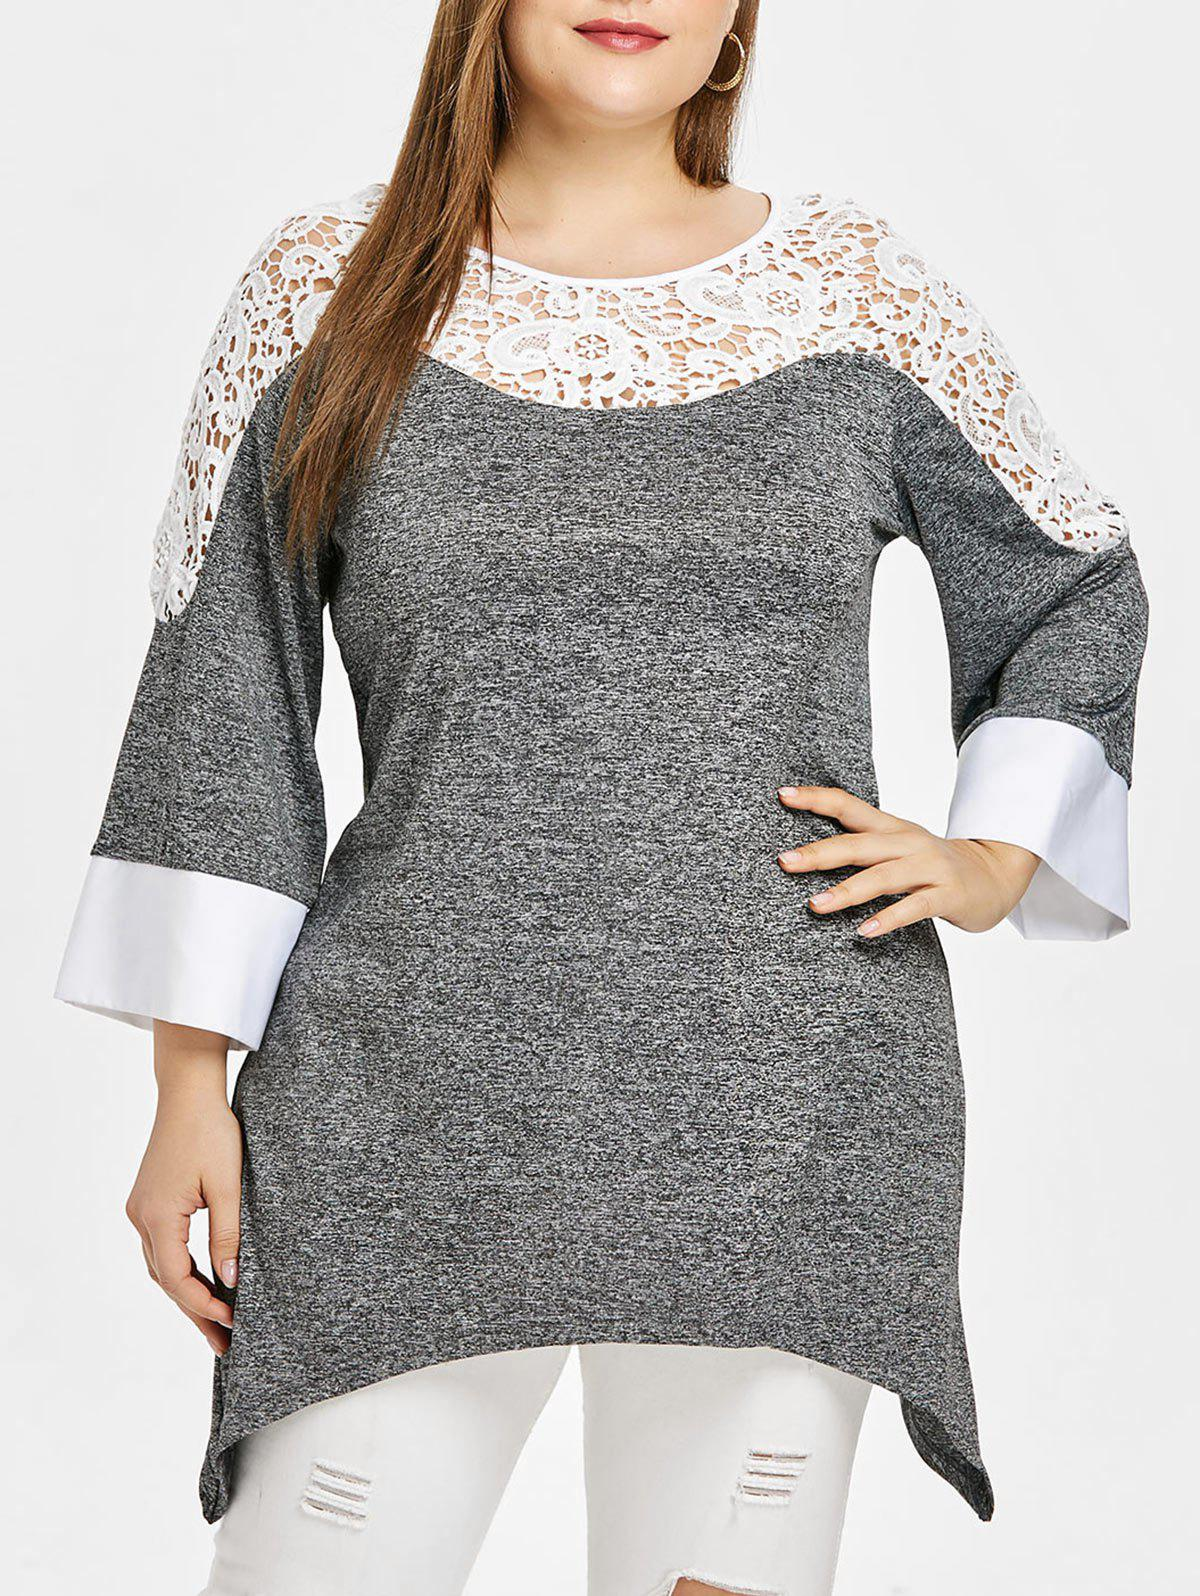 New Plus Size Three Quarters Two Tone Applique T-shirt